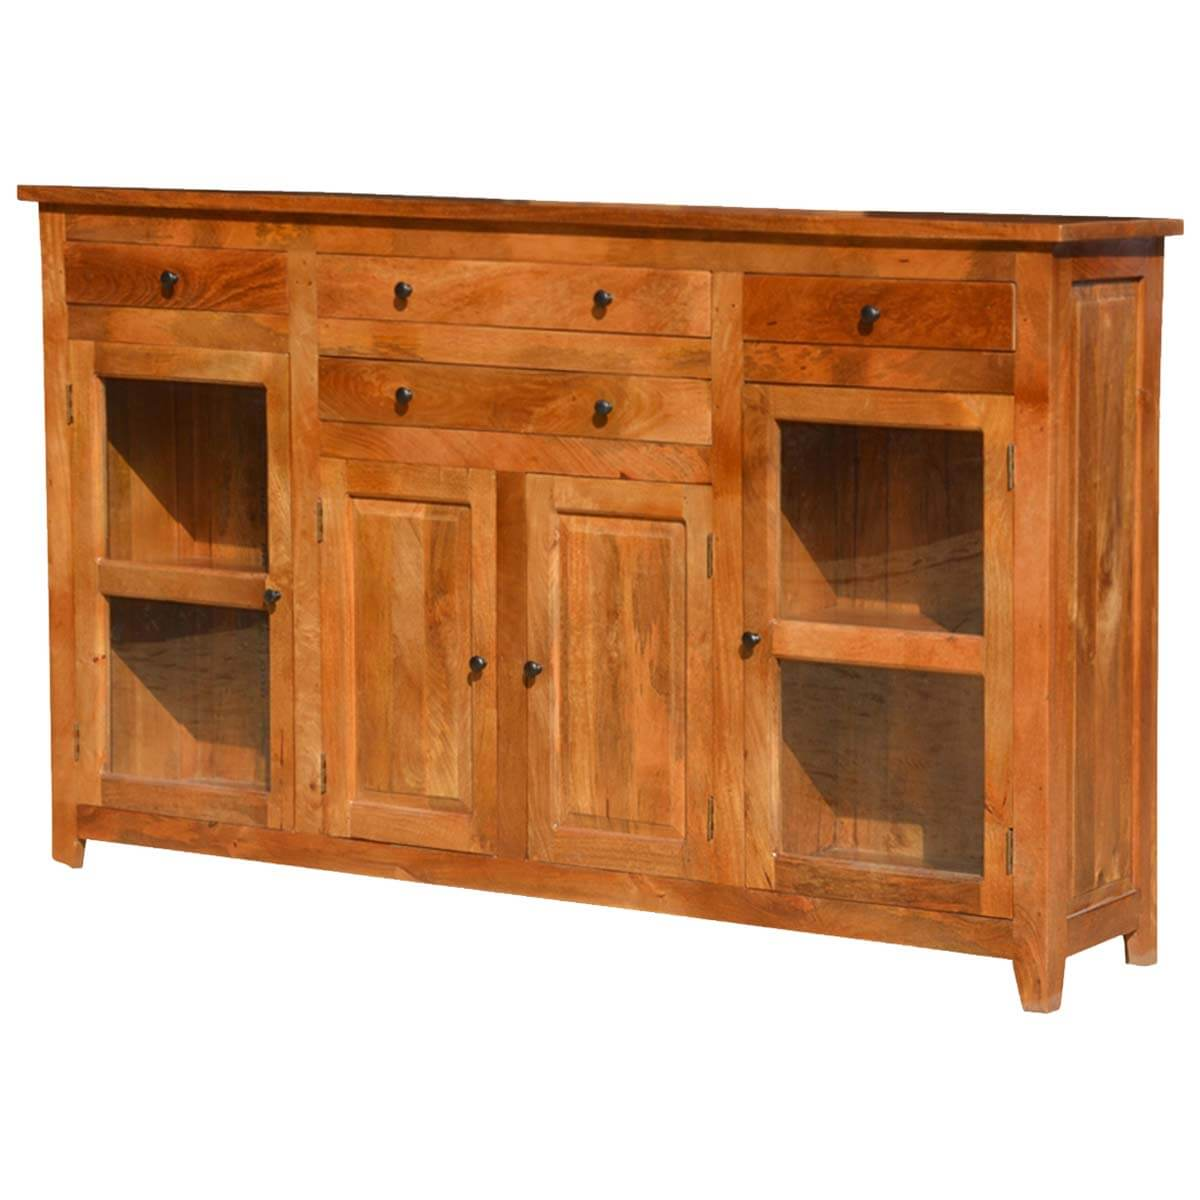 Williamsburg Rustic Mango Wood Glass Door 4 Drawer Sideboard Cabinet